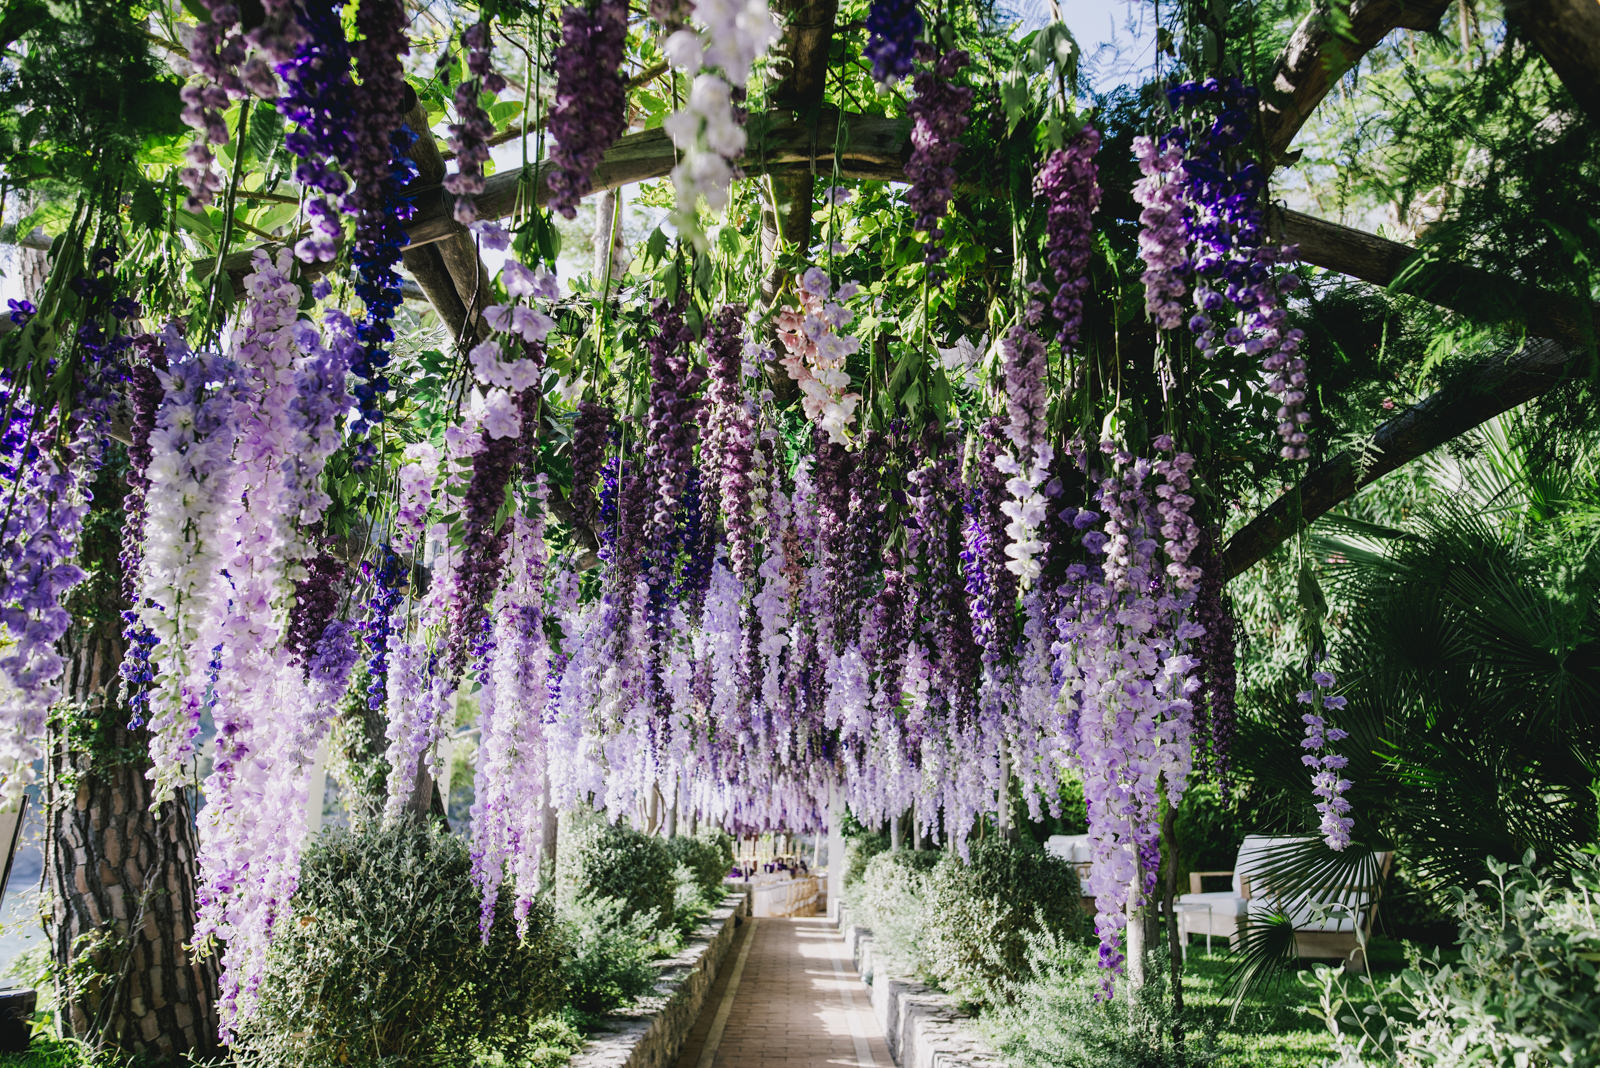 a path in villa tre ville with wisteria